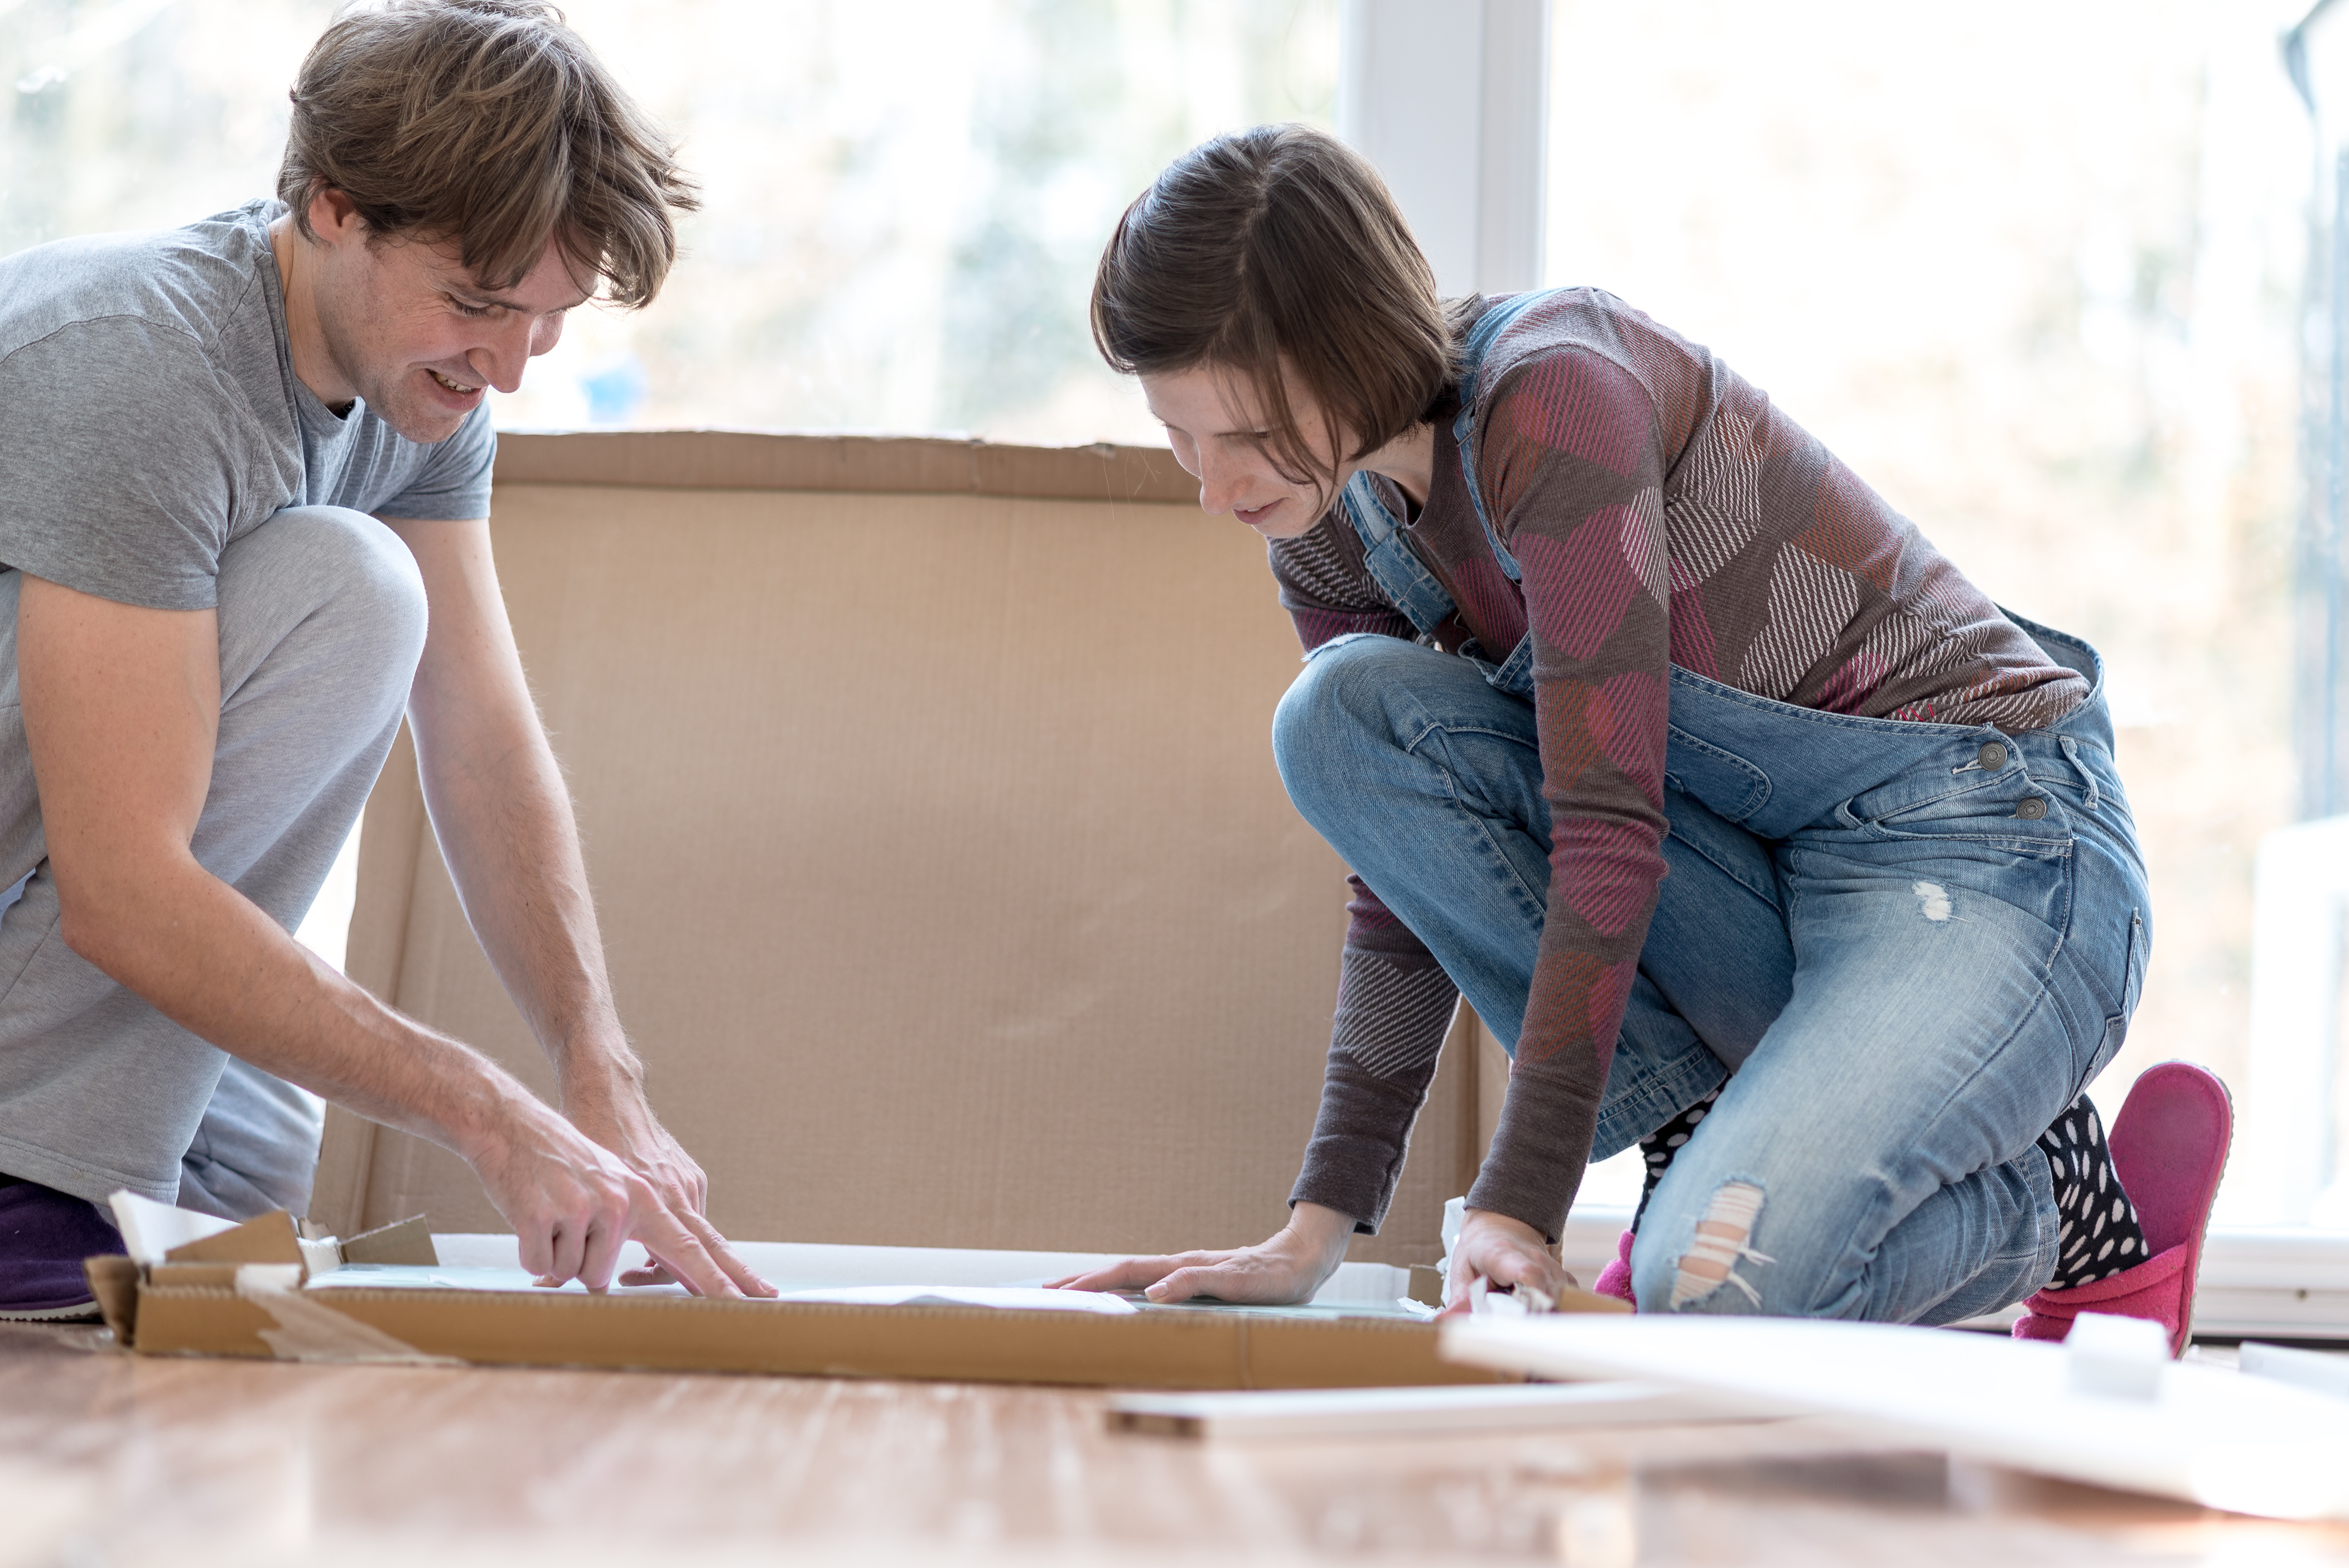 Young couple taking delight in putting together self assembly furniture as they move into their new home.